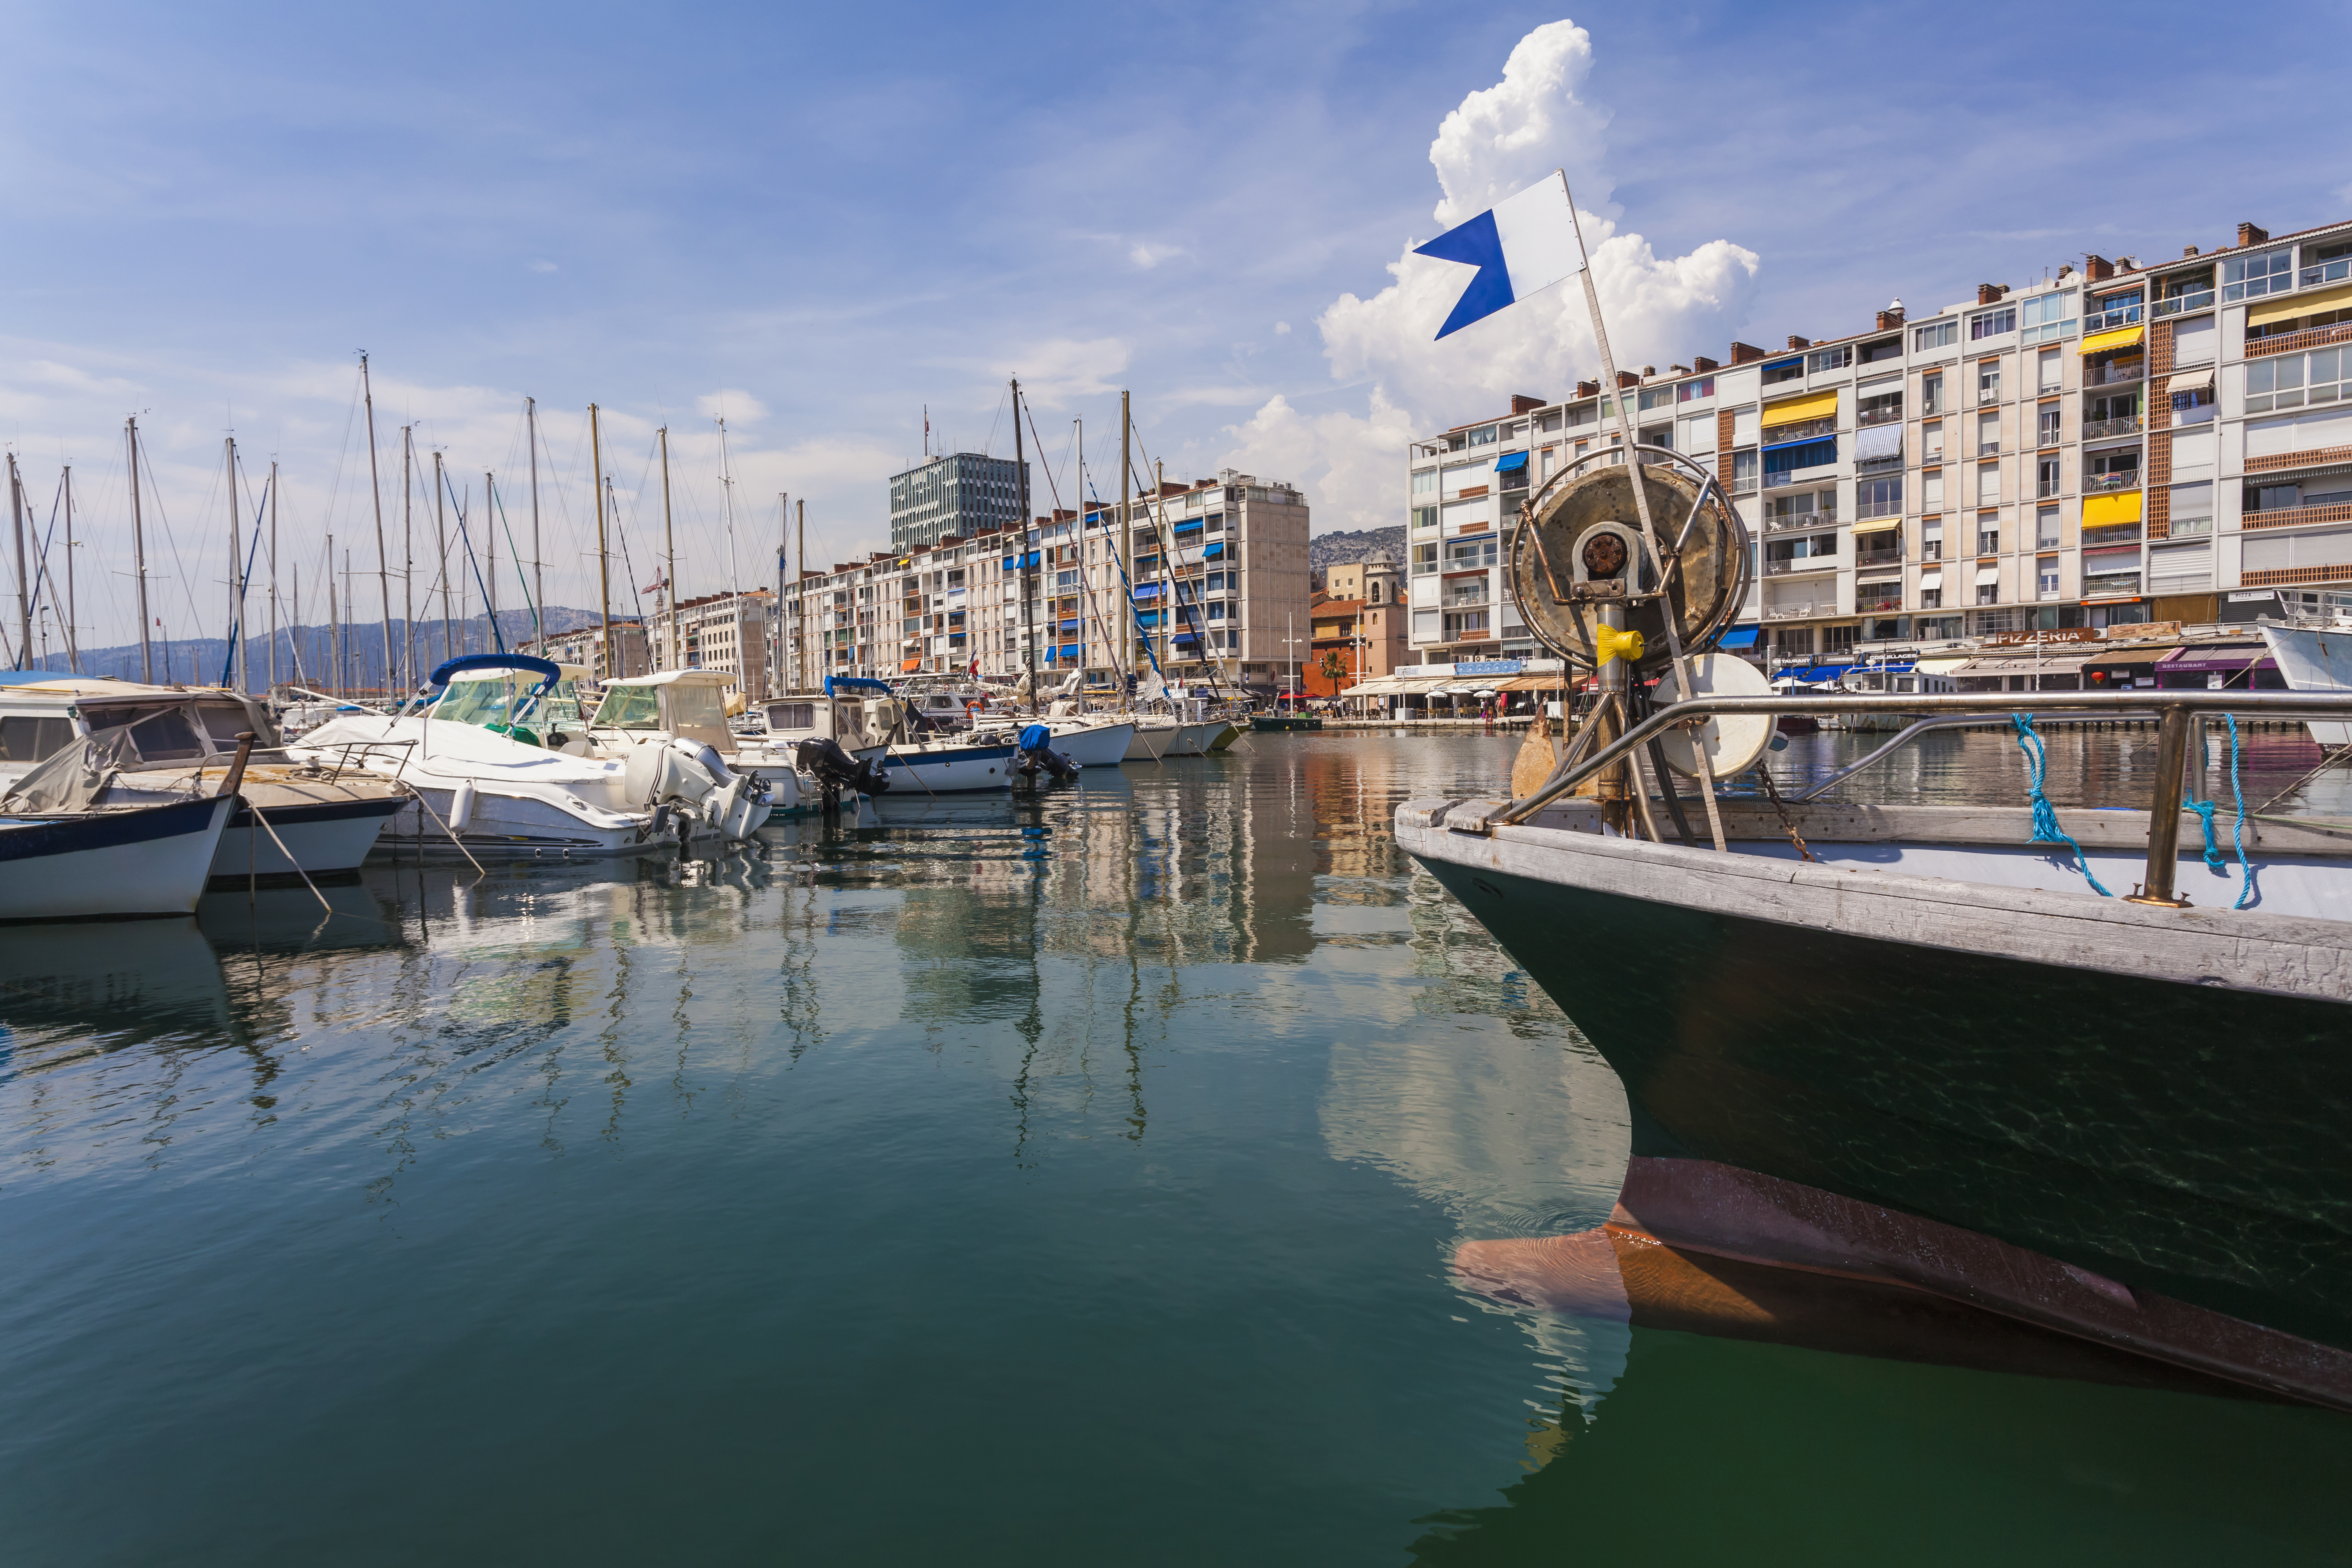 The harbor of Toulon